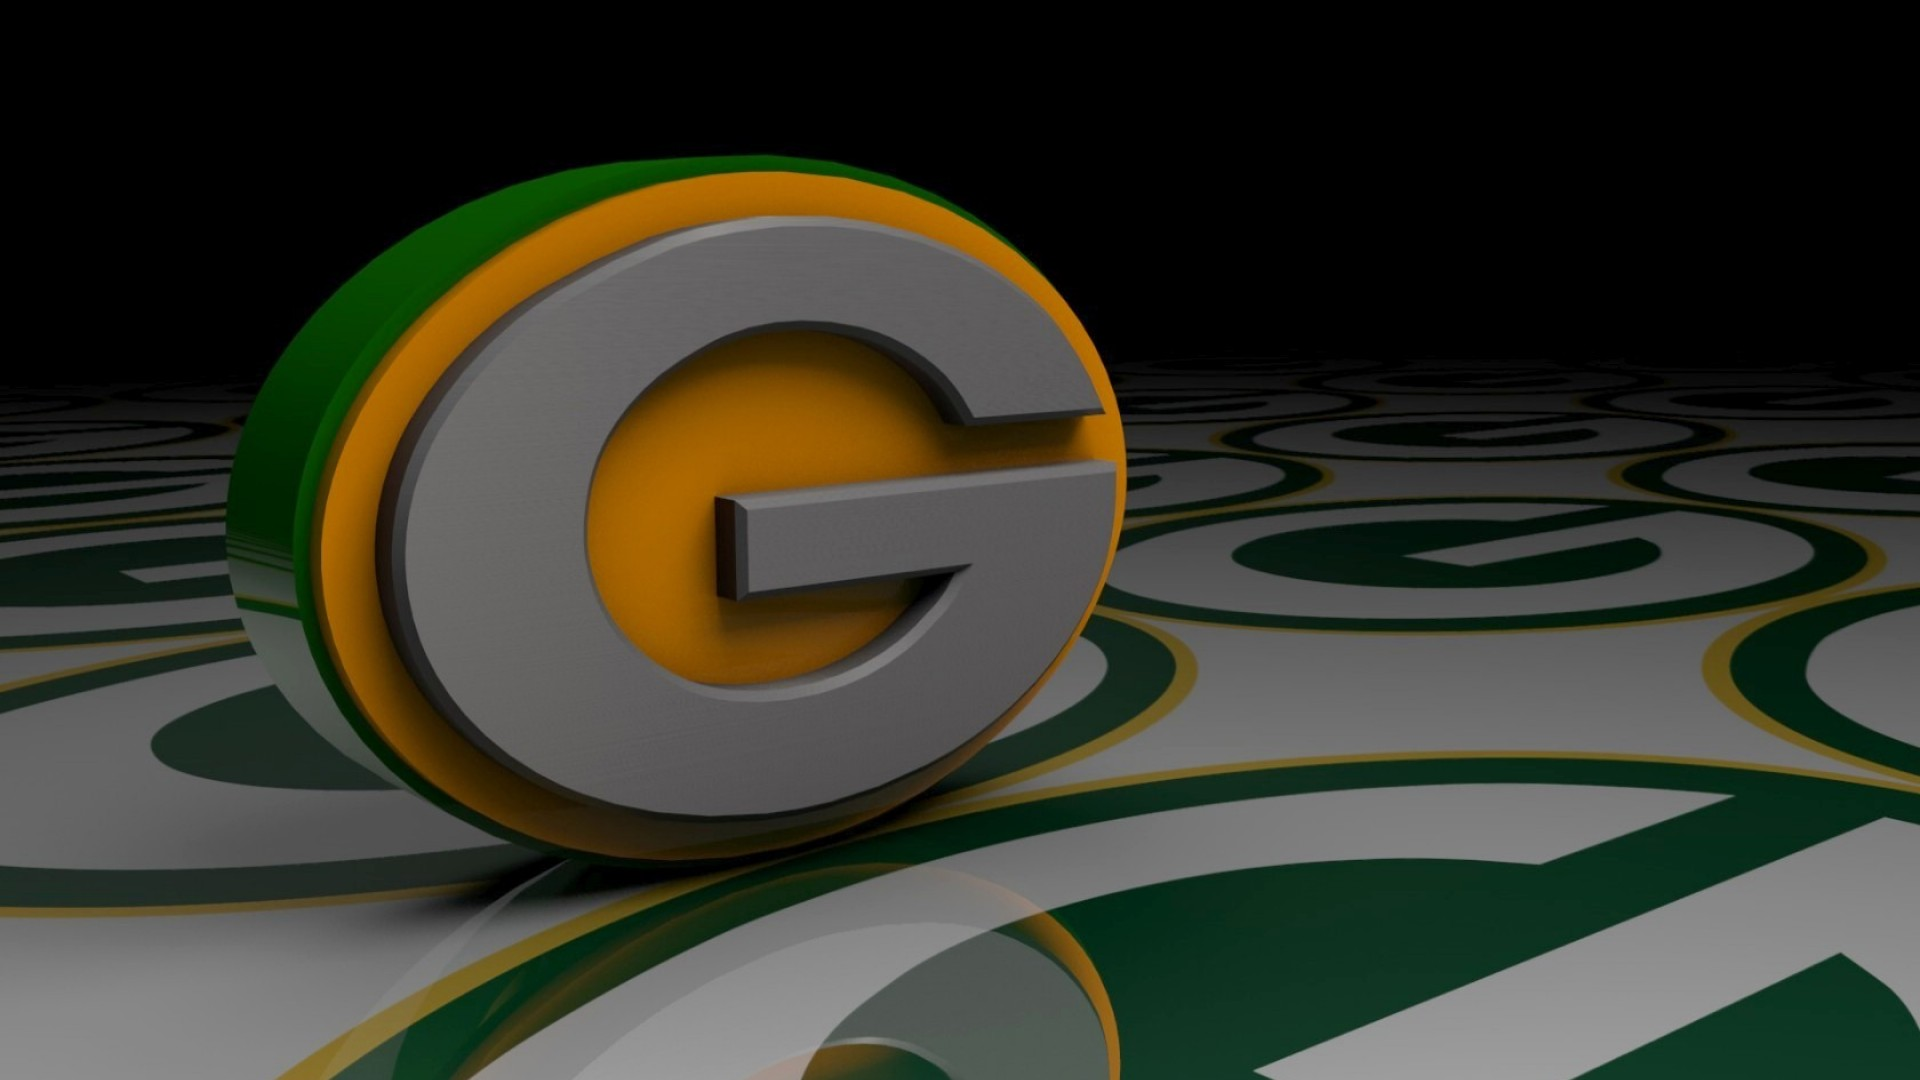 ideas about Green Bay Packers Wallpaper on Pinterest  Green 1920x1080